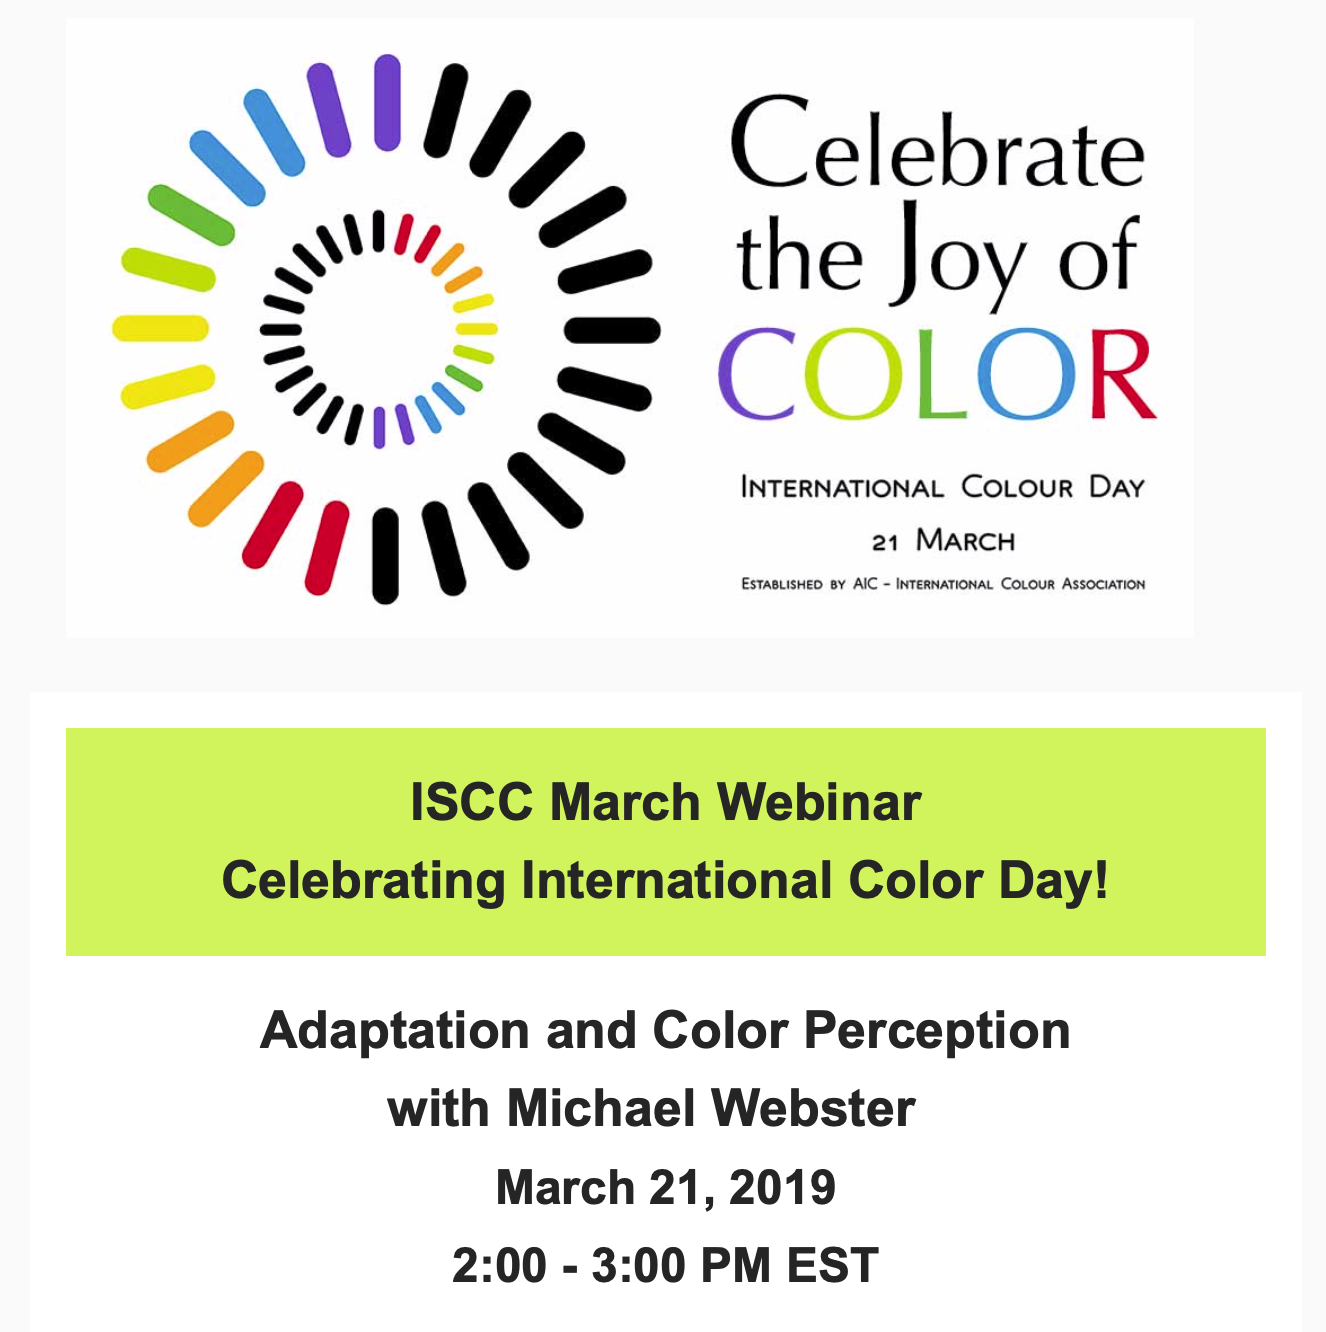 ISCC.org Adaptation and color perception webinar